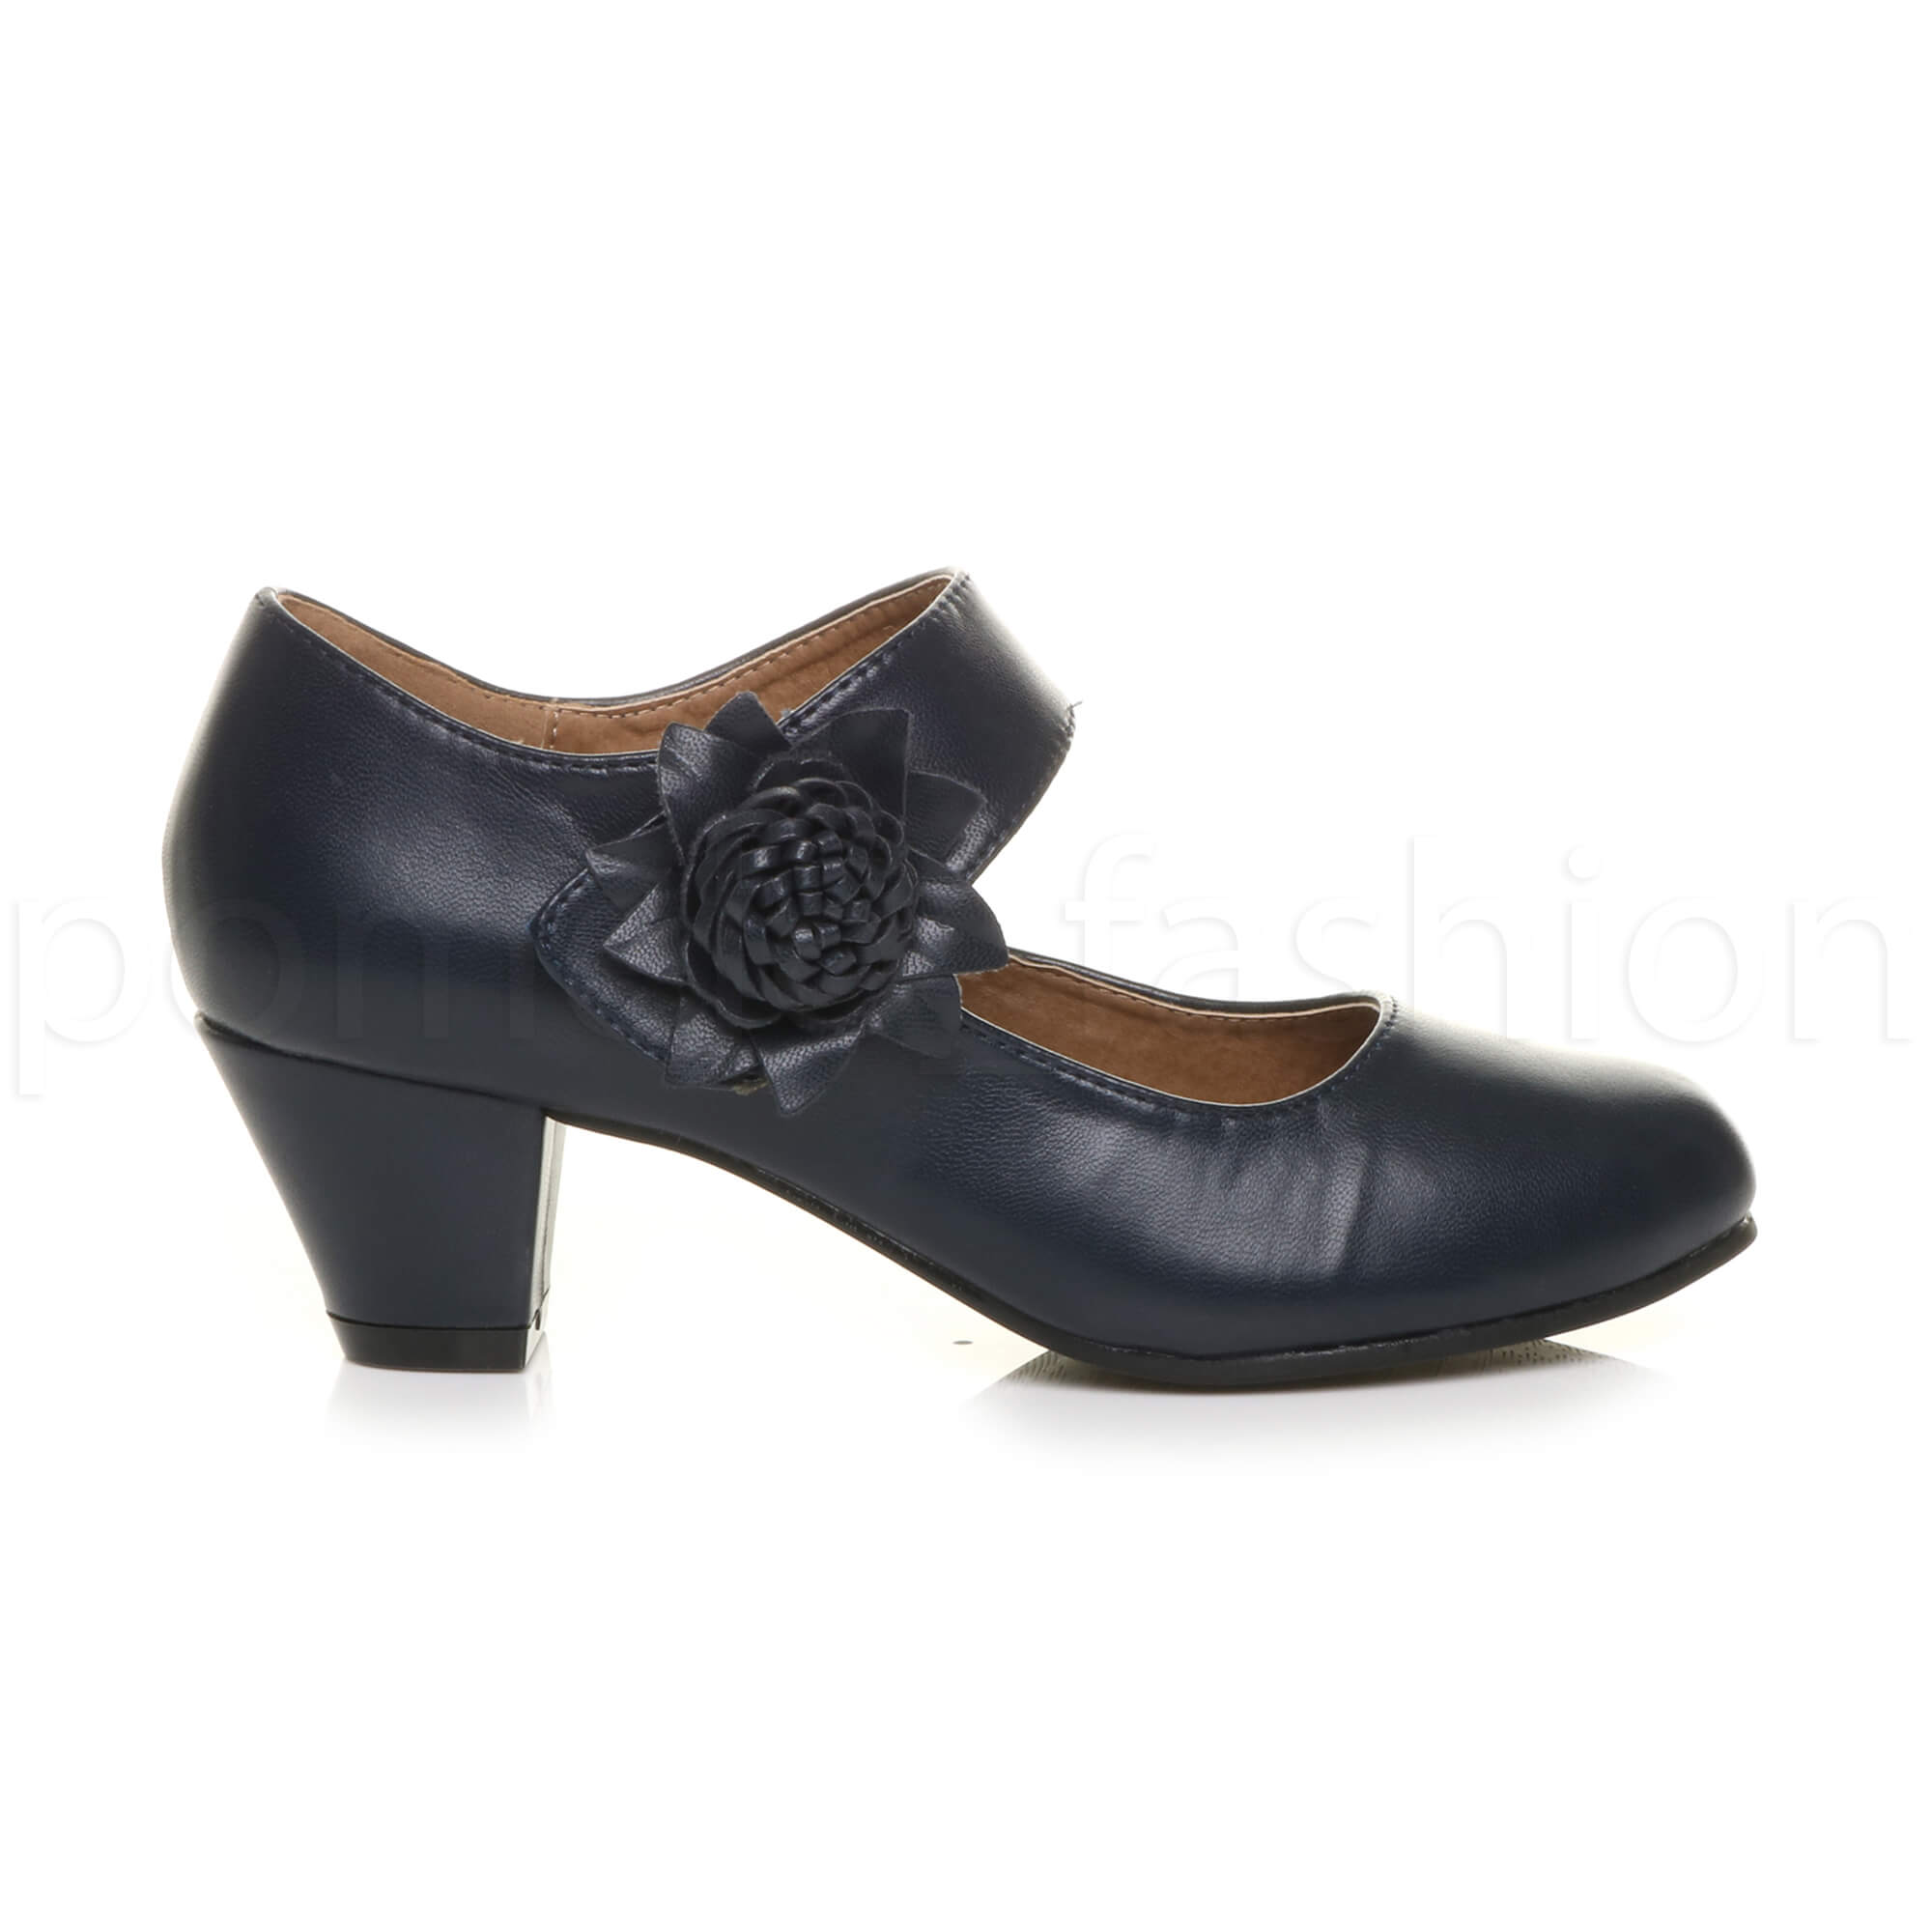 367627a9151 Womens Ladies Comfort Mid Block Heel Mary Jane Padded Leather Lined ...